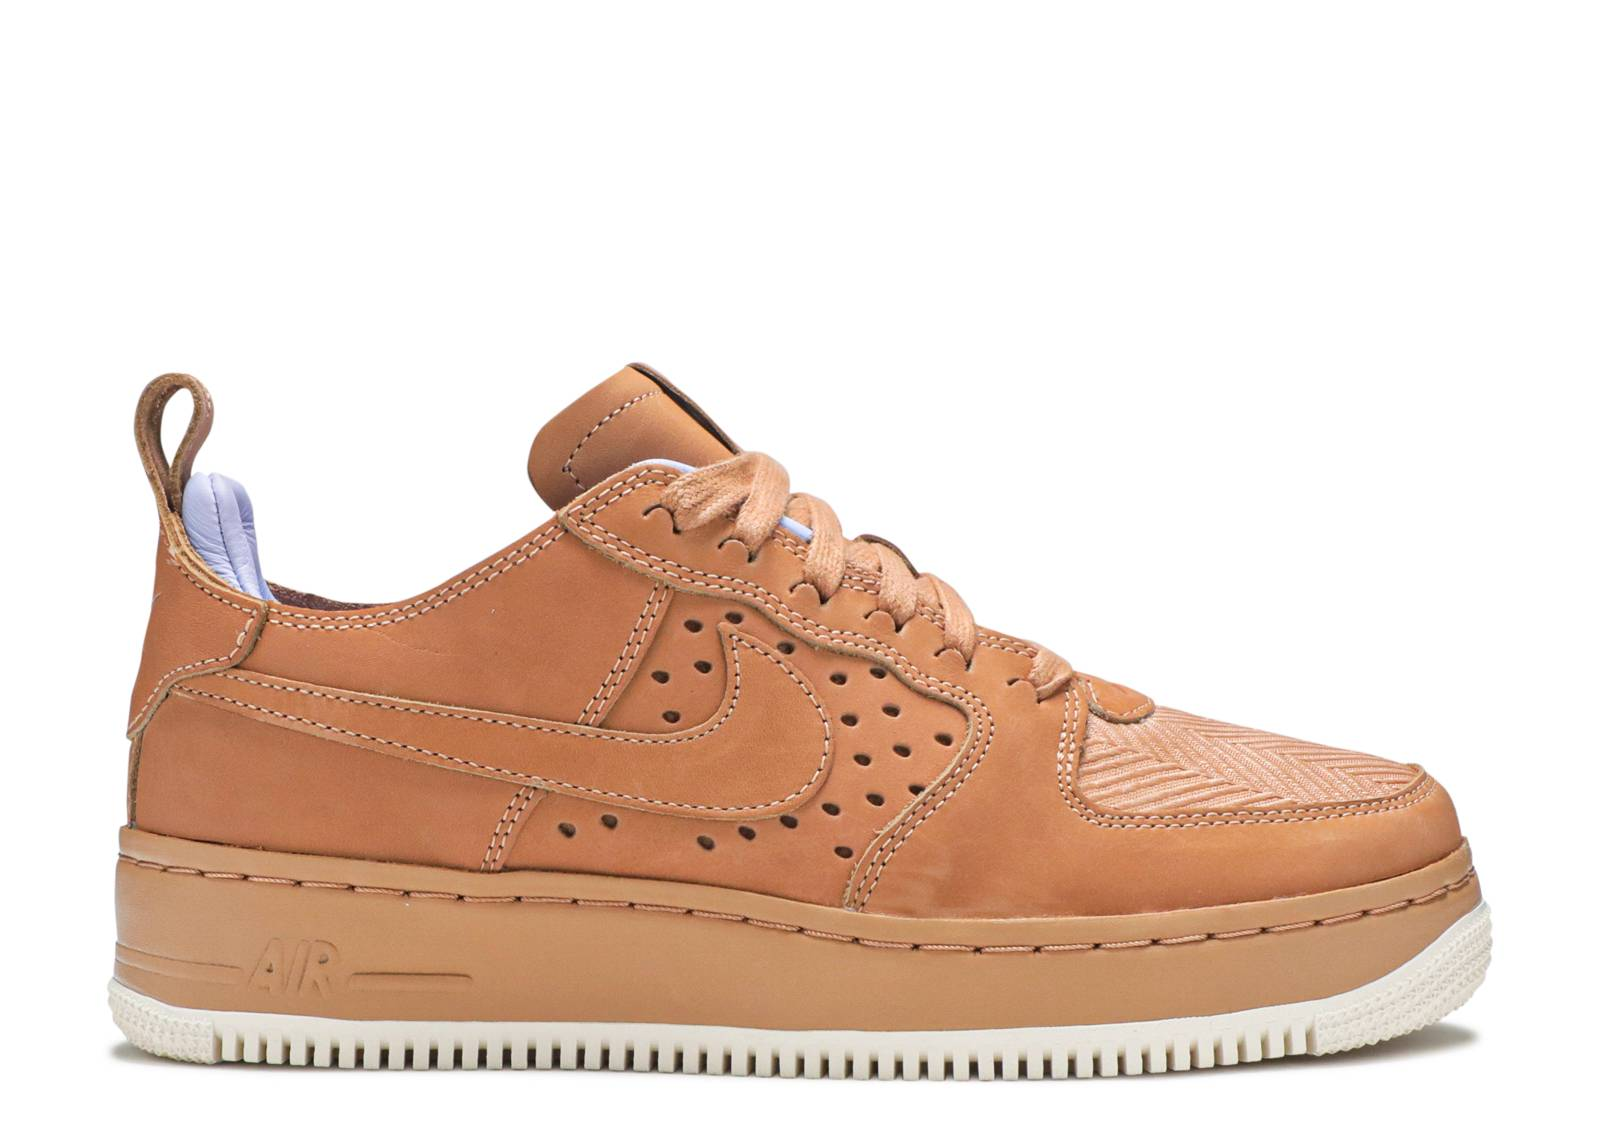 NikeLab Air Force 1 Low CMFT TC